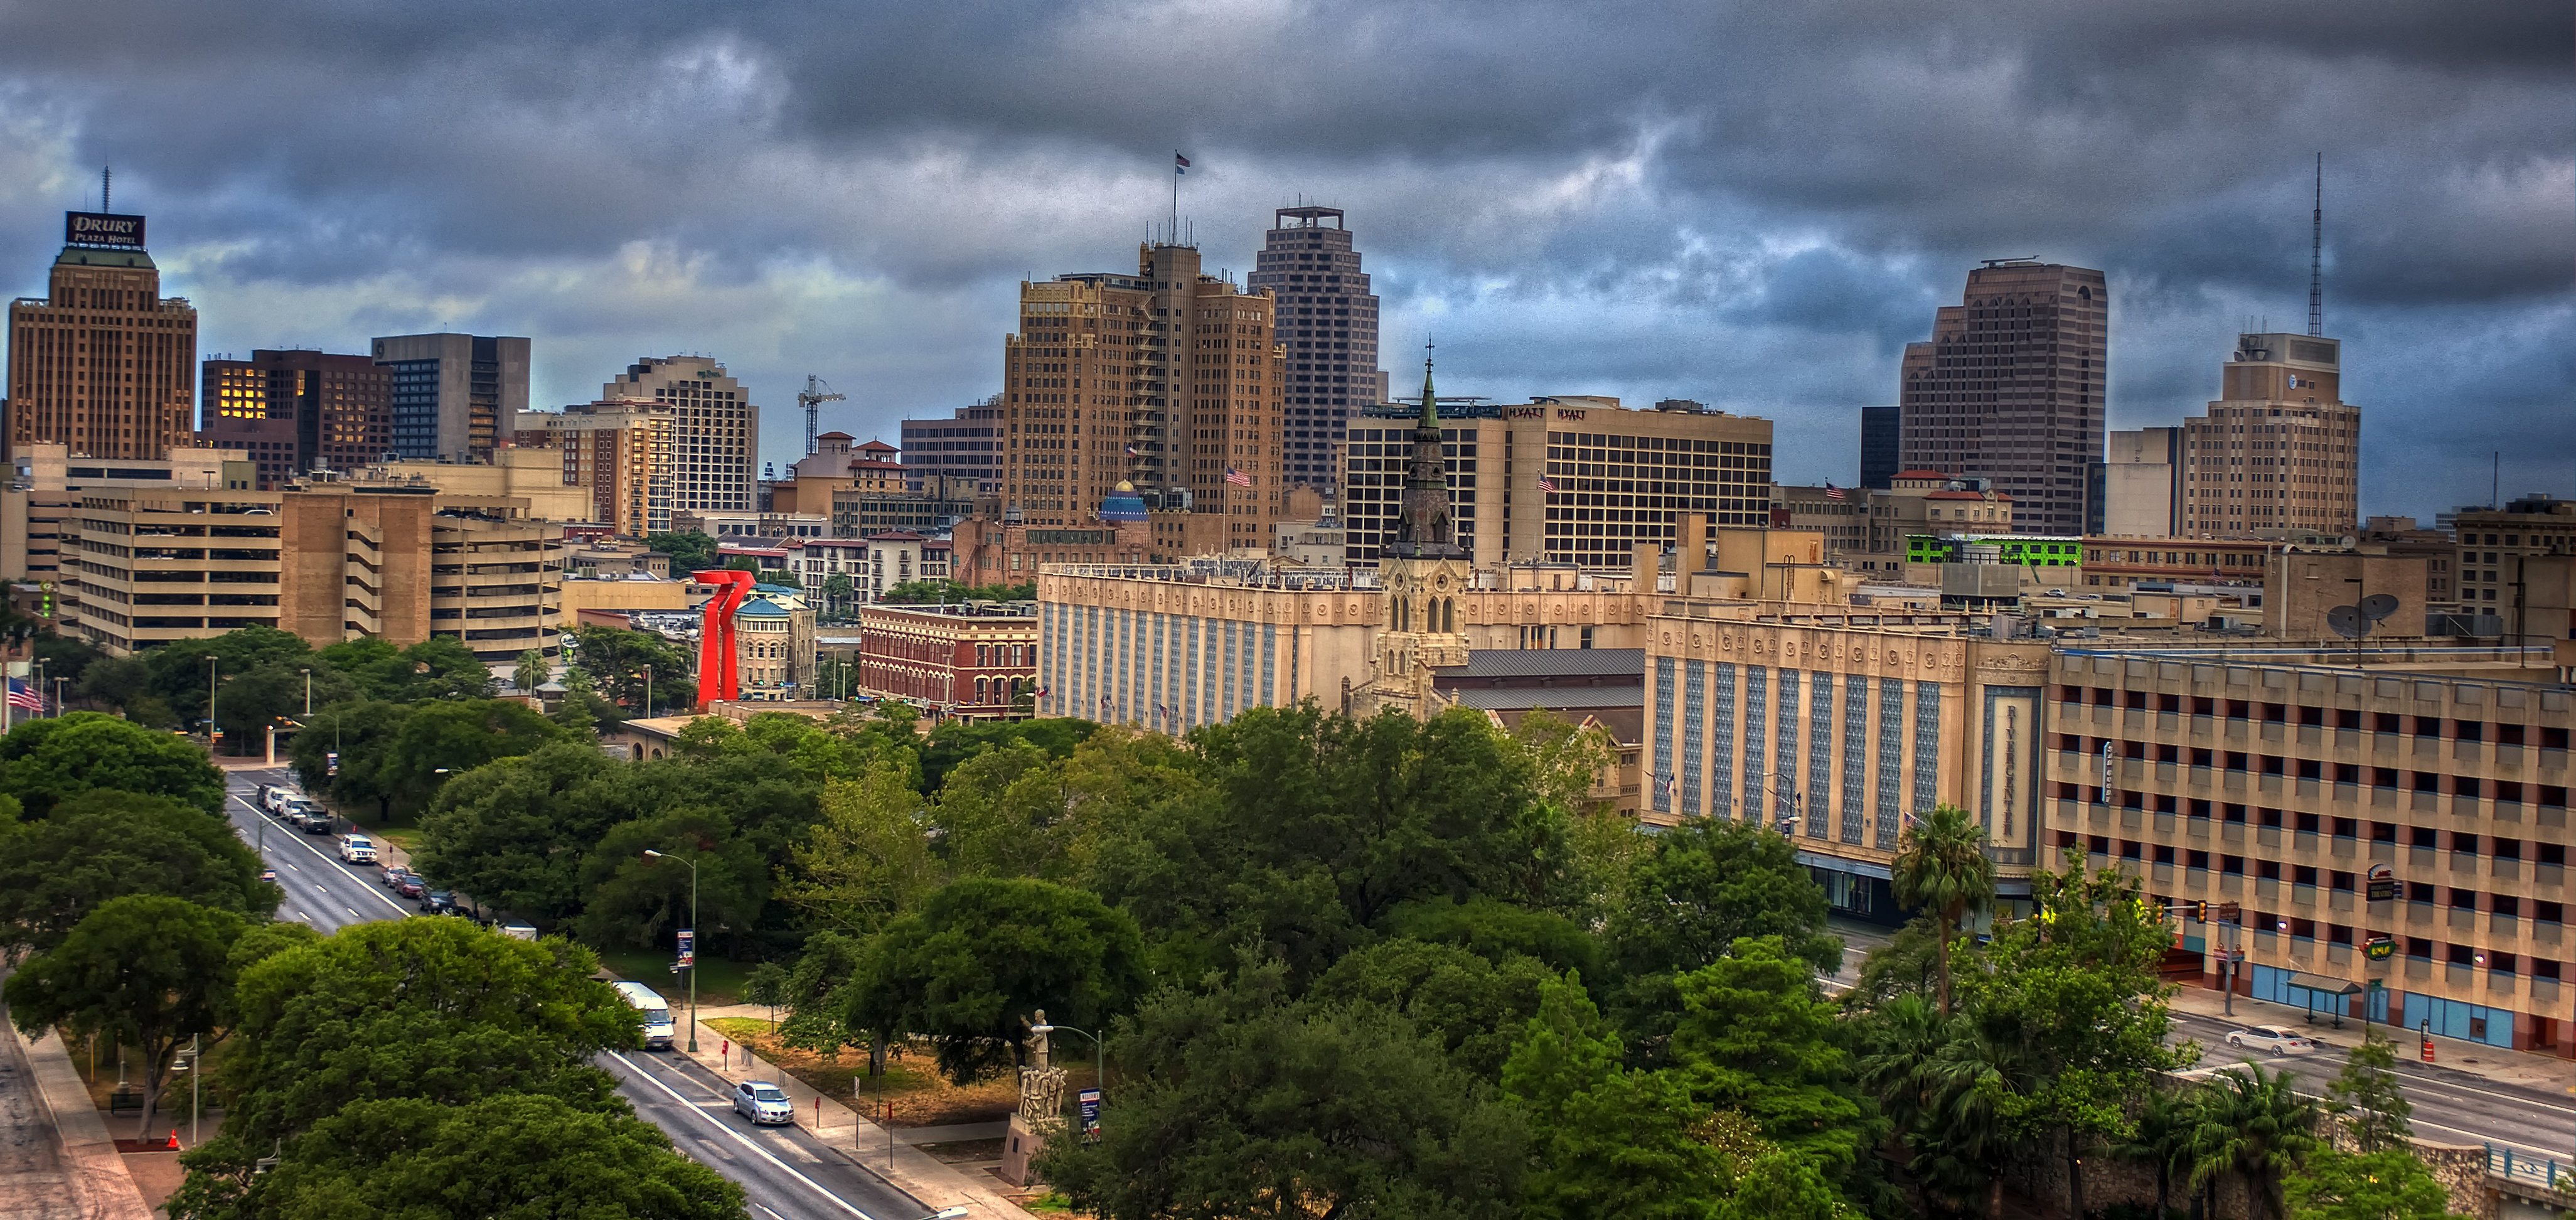 san antonio San antonio (/ ˌ s æ n æ n ˈ t oʊ n i oʊ / from spanish, saint anthony) officially the city of san antonio, is the seventh most populous city in the united states and the second most populous city in both texas and the southern united states.